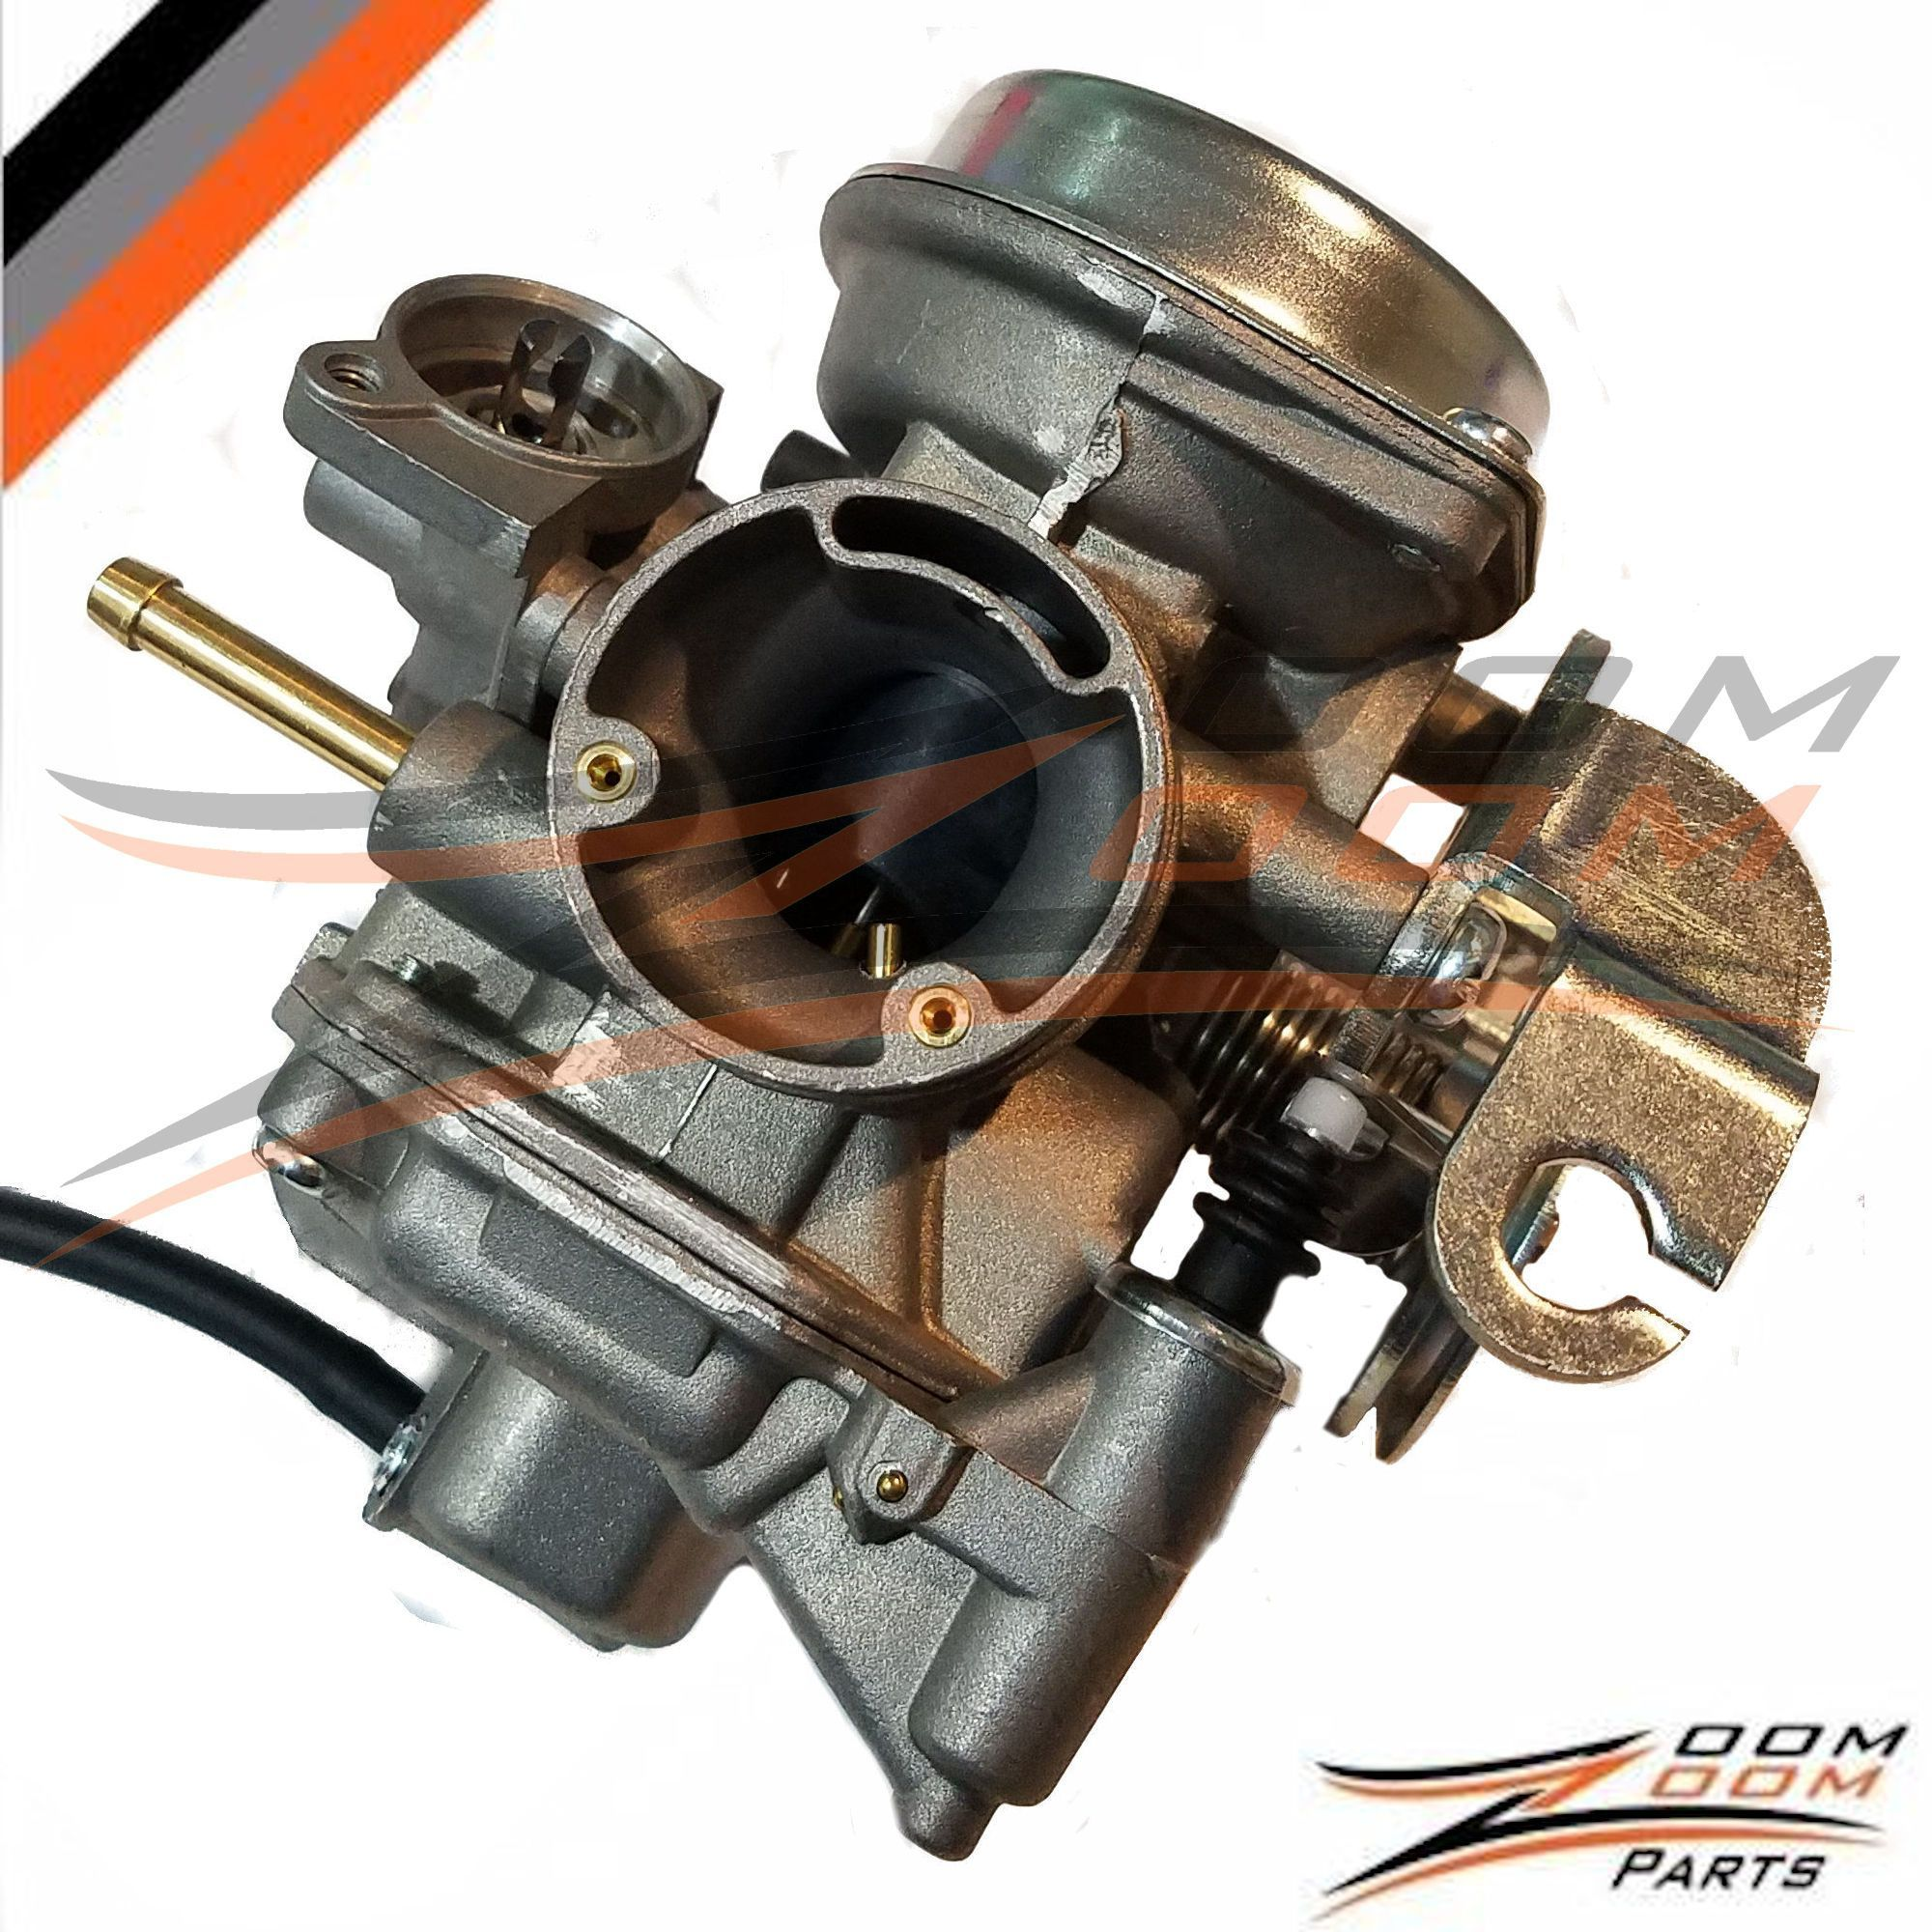 Oem Carburetor Fits E Ton Eton Rover Viper 70cc 90cc 4 Stroke Carb 2006 2013 Zoom Zoom Parts Carburetor Viper Atv Parts